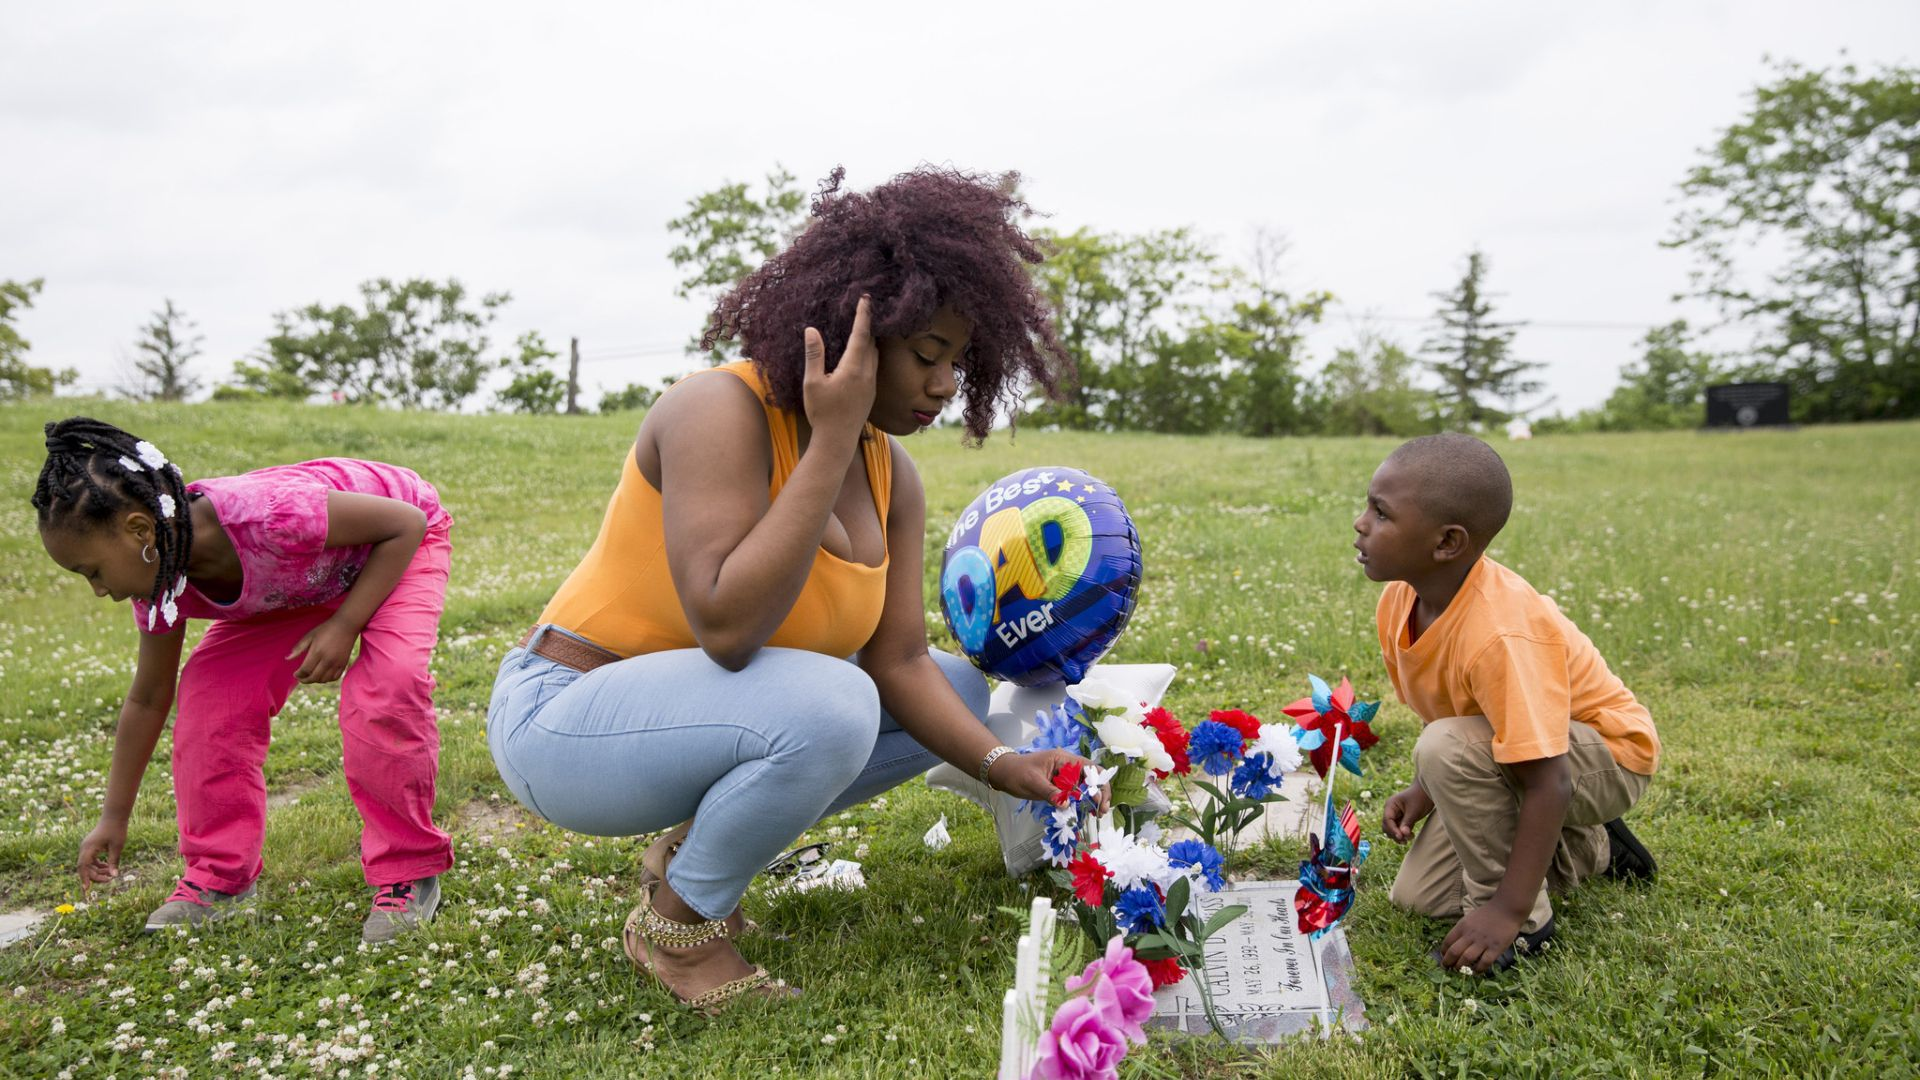 Calvin Cross' family visits his grave for his birthday